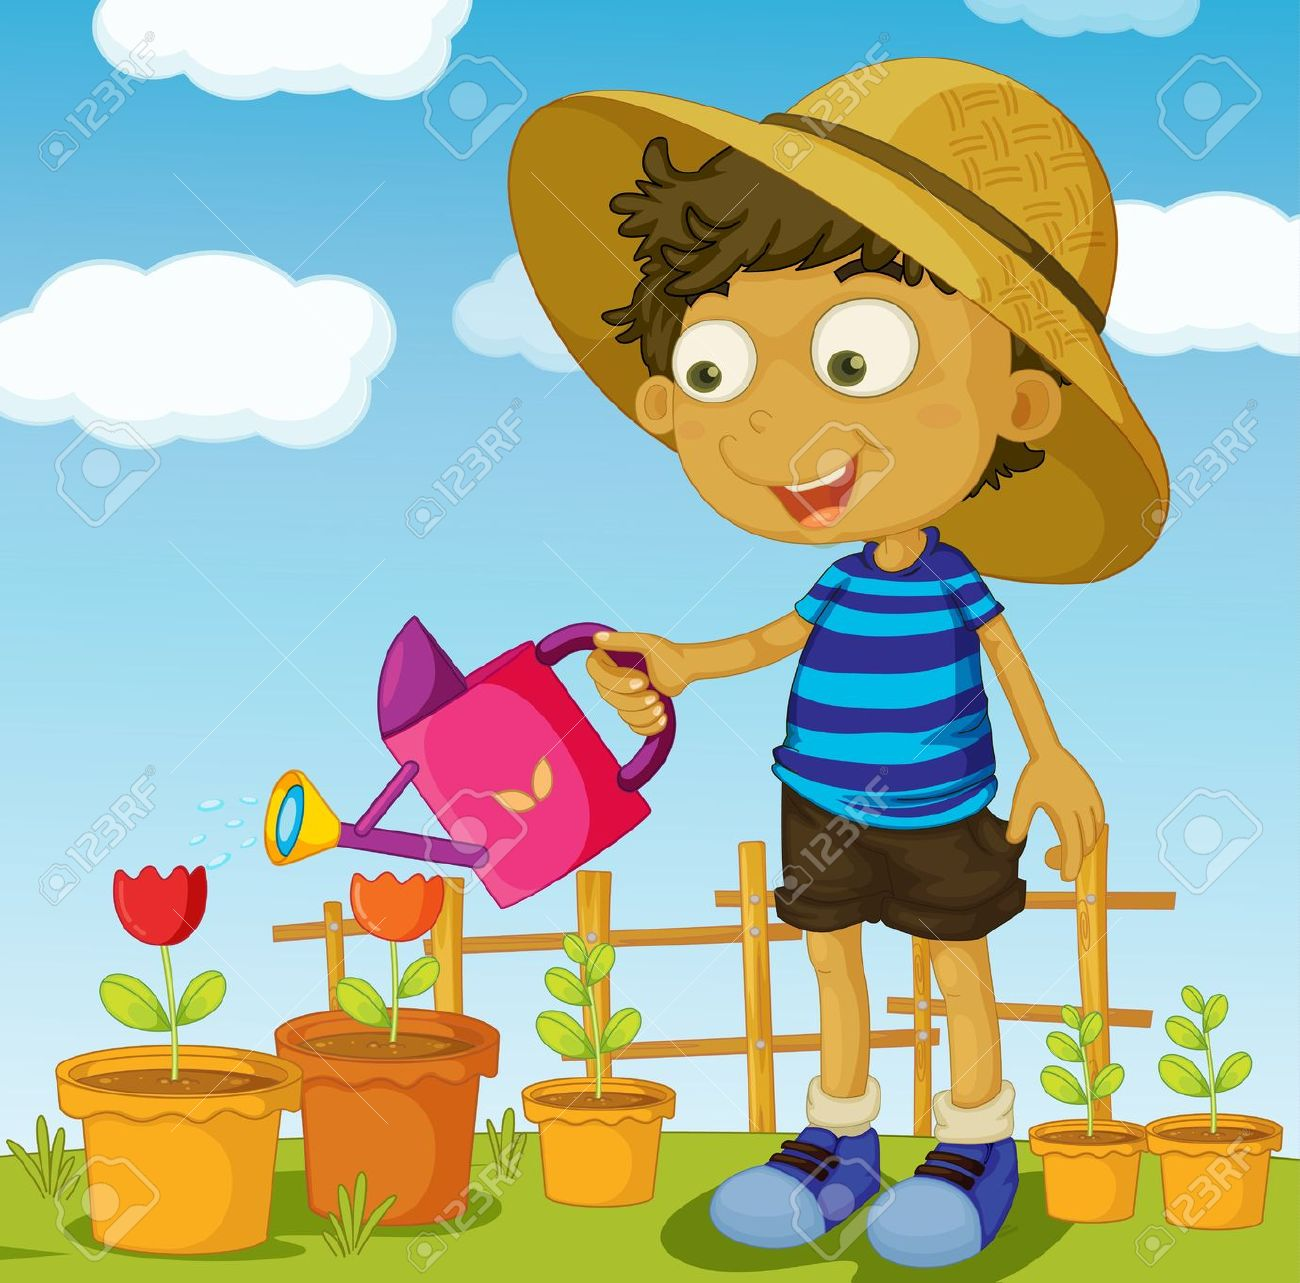 Child watering plants clipart graphic transparent download Boy watering plants clipart 4 » Clipart Station graphic transparent download